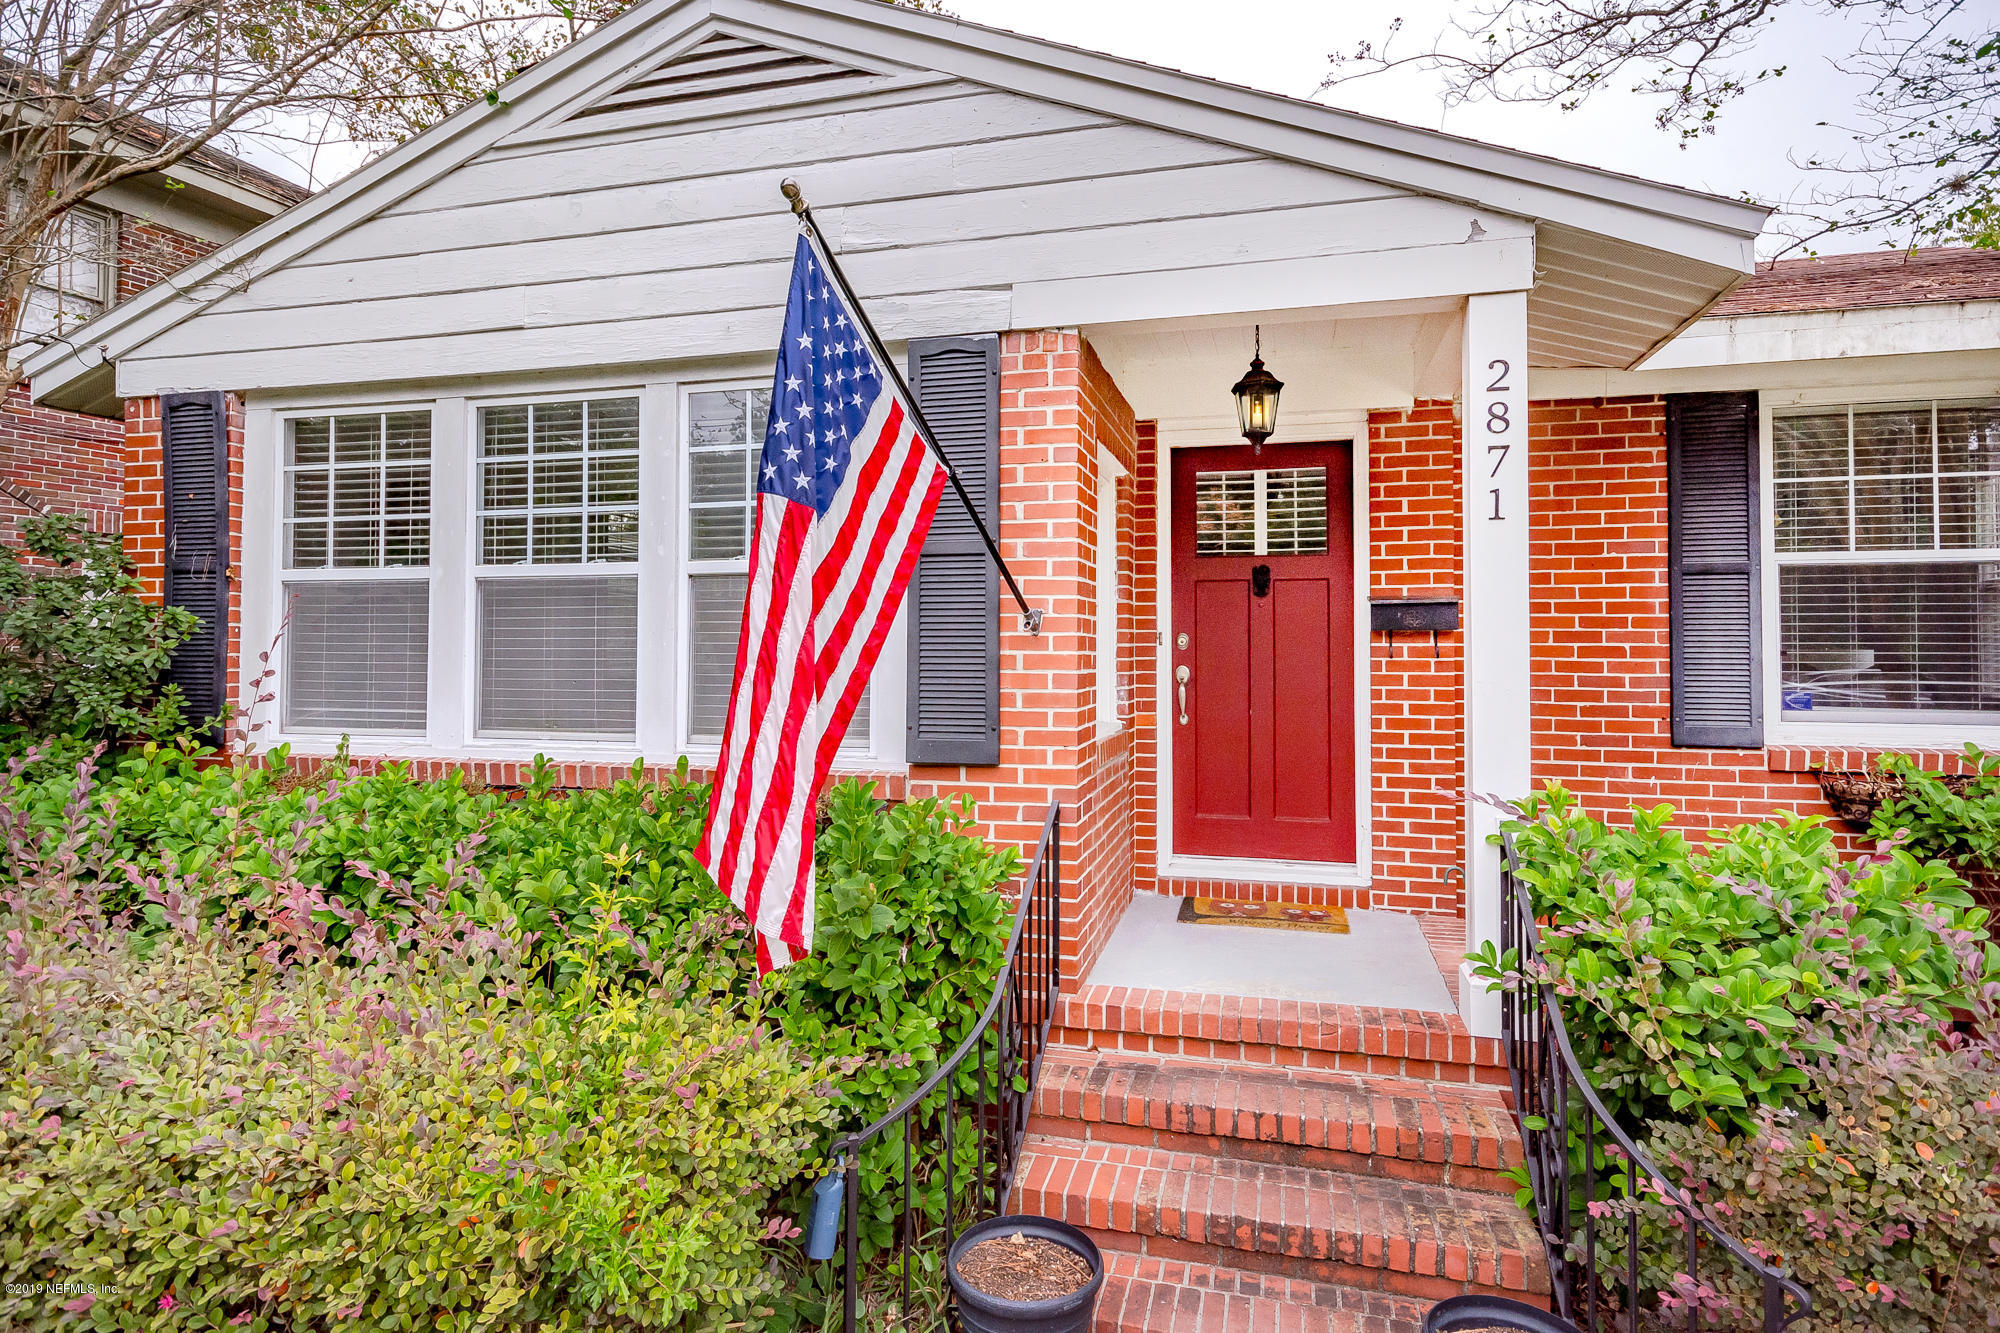 2871 DOWNING, JACKSONVILLE, FLORIDA 32205, 3 Bedrooms Bedrooms, ,1 BathroomBathrooms,Residential,For sale,DOWNING,1026052